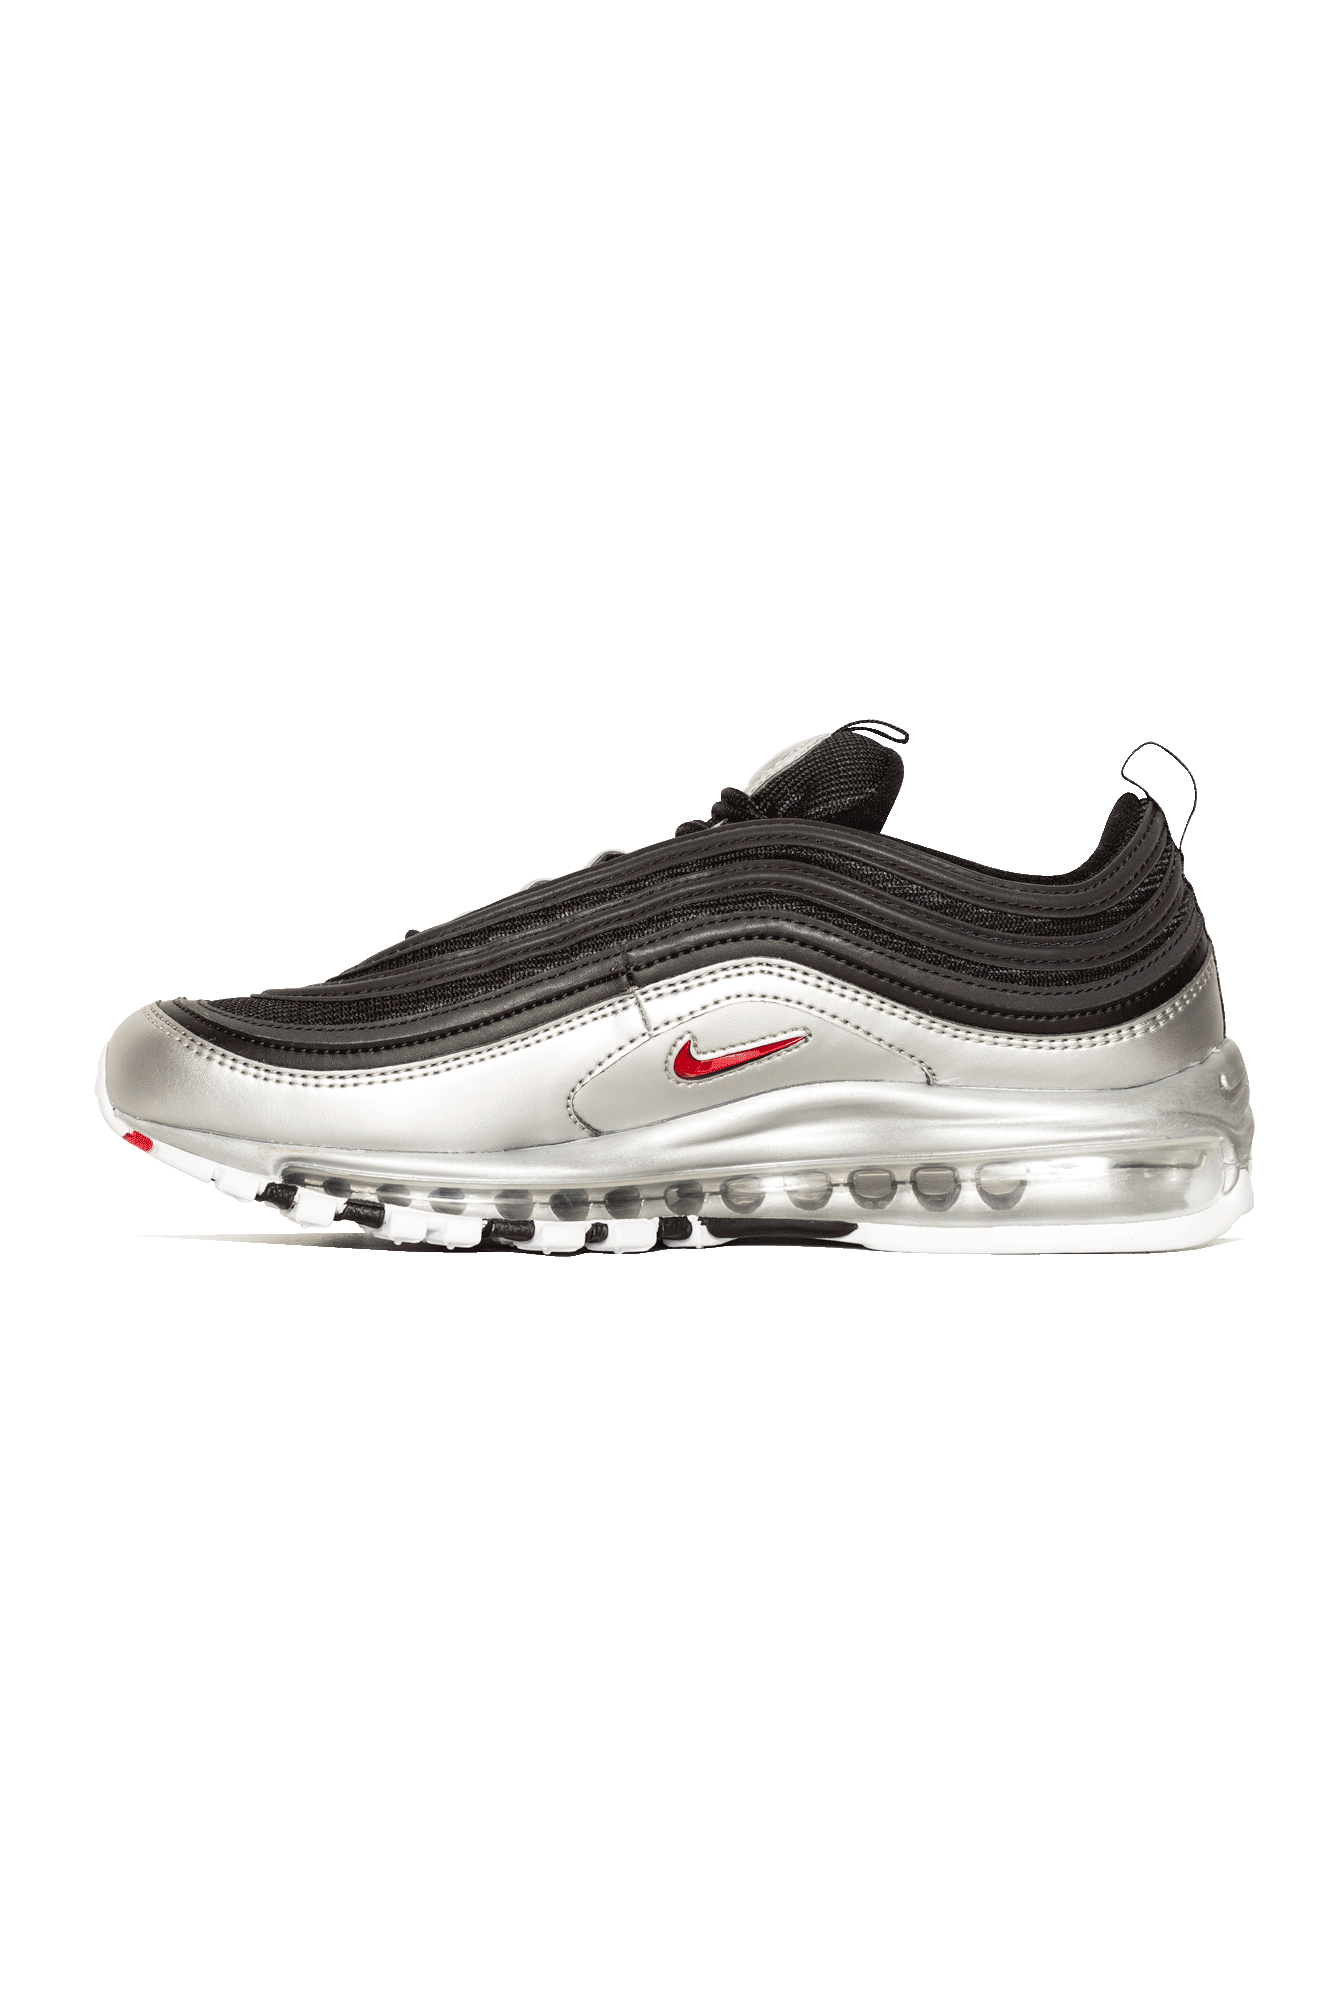 Nike Sneakers Air Max 97 QS Black AT5458 #000#001#7 One